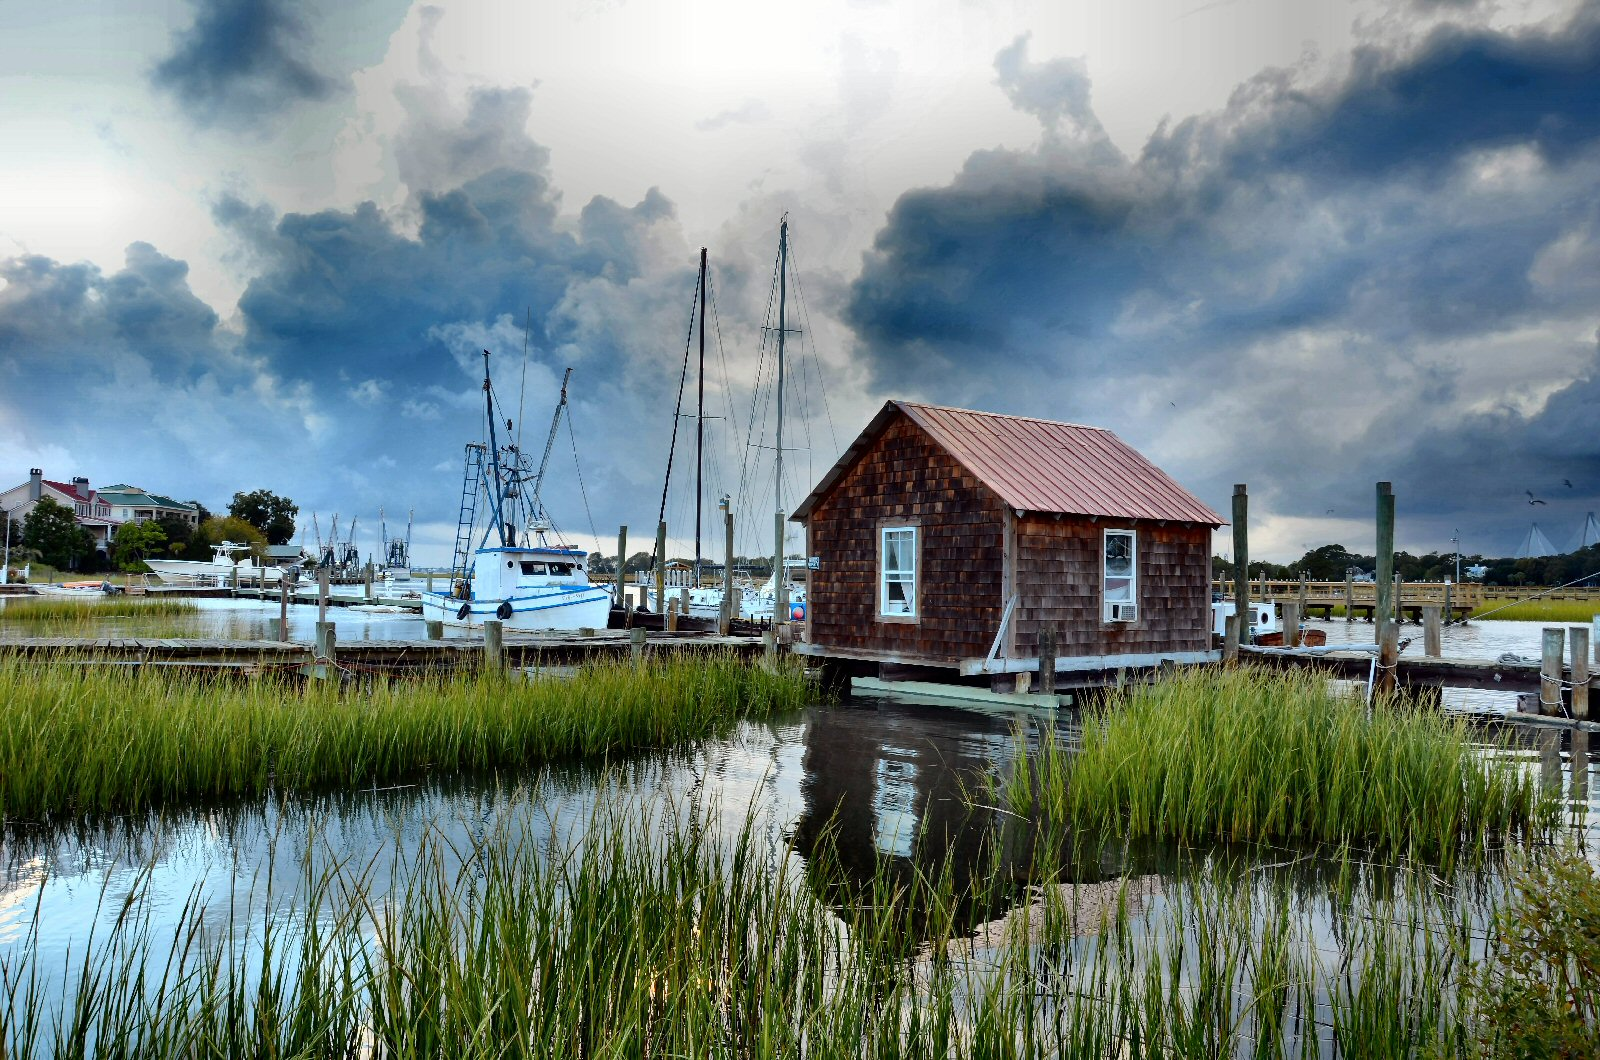 """WINNER! Amateur category: Before the Storm by Pamela Talbird; """"I was driving through Mt. Pleasant when a storm was moving in.  The sky was changing drastically so I stopped off at Shem Creek to shoot a few photos before the downpour."""""""